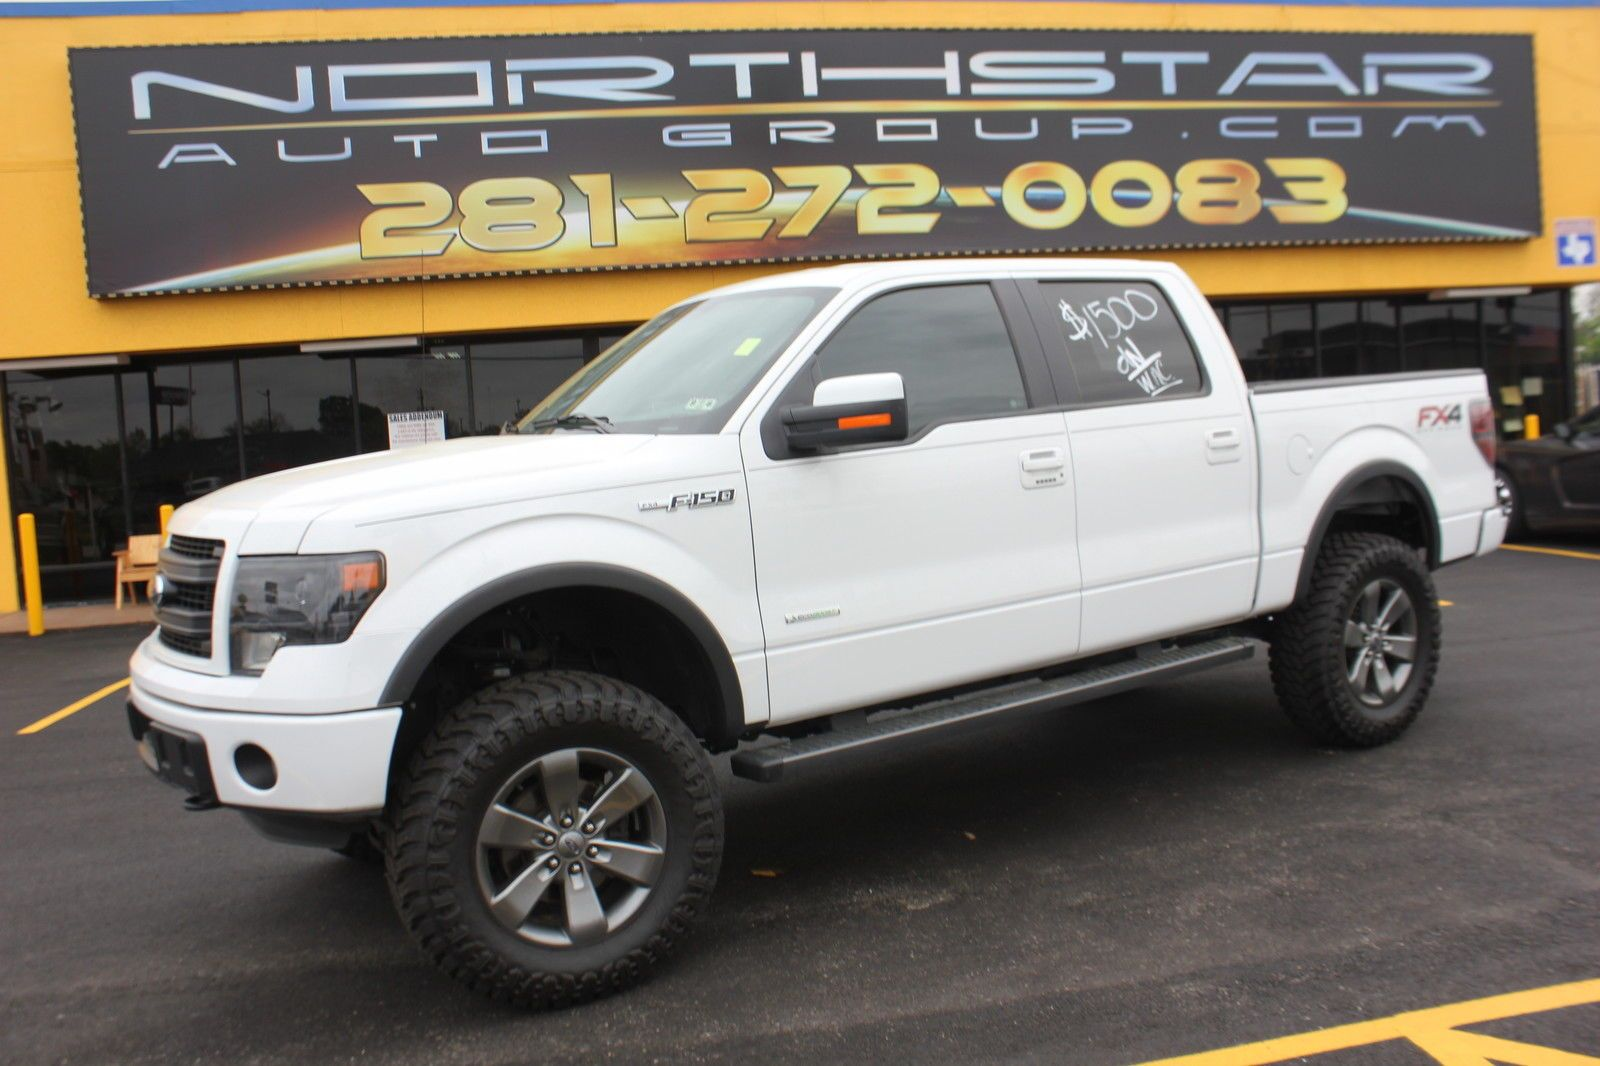 2013 ford f 150 fx4 leveled and lifted trucks edwards ford - 2014 Ford F 150 Lift Truck Extended Cab Pickup